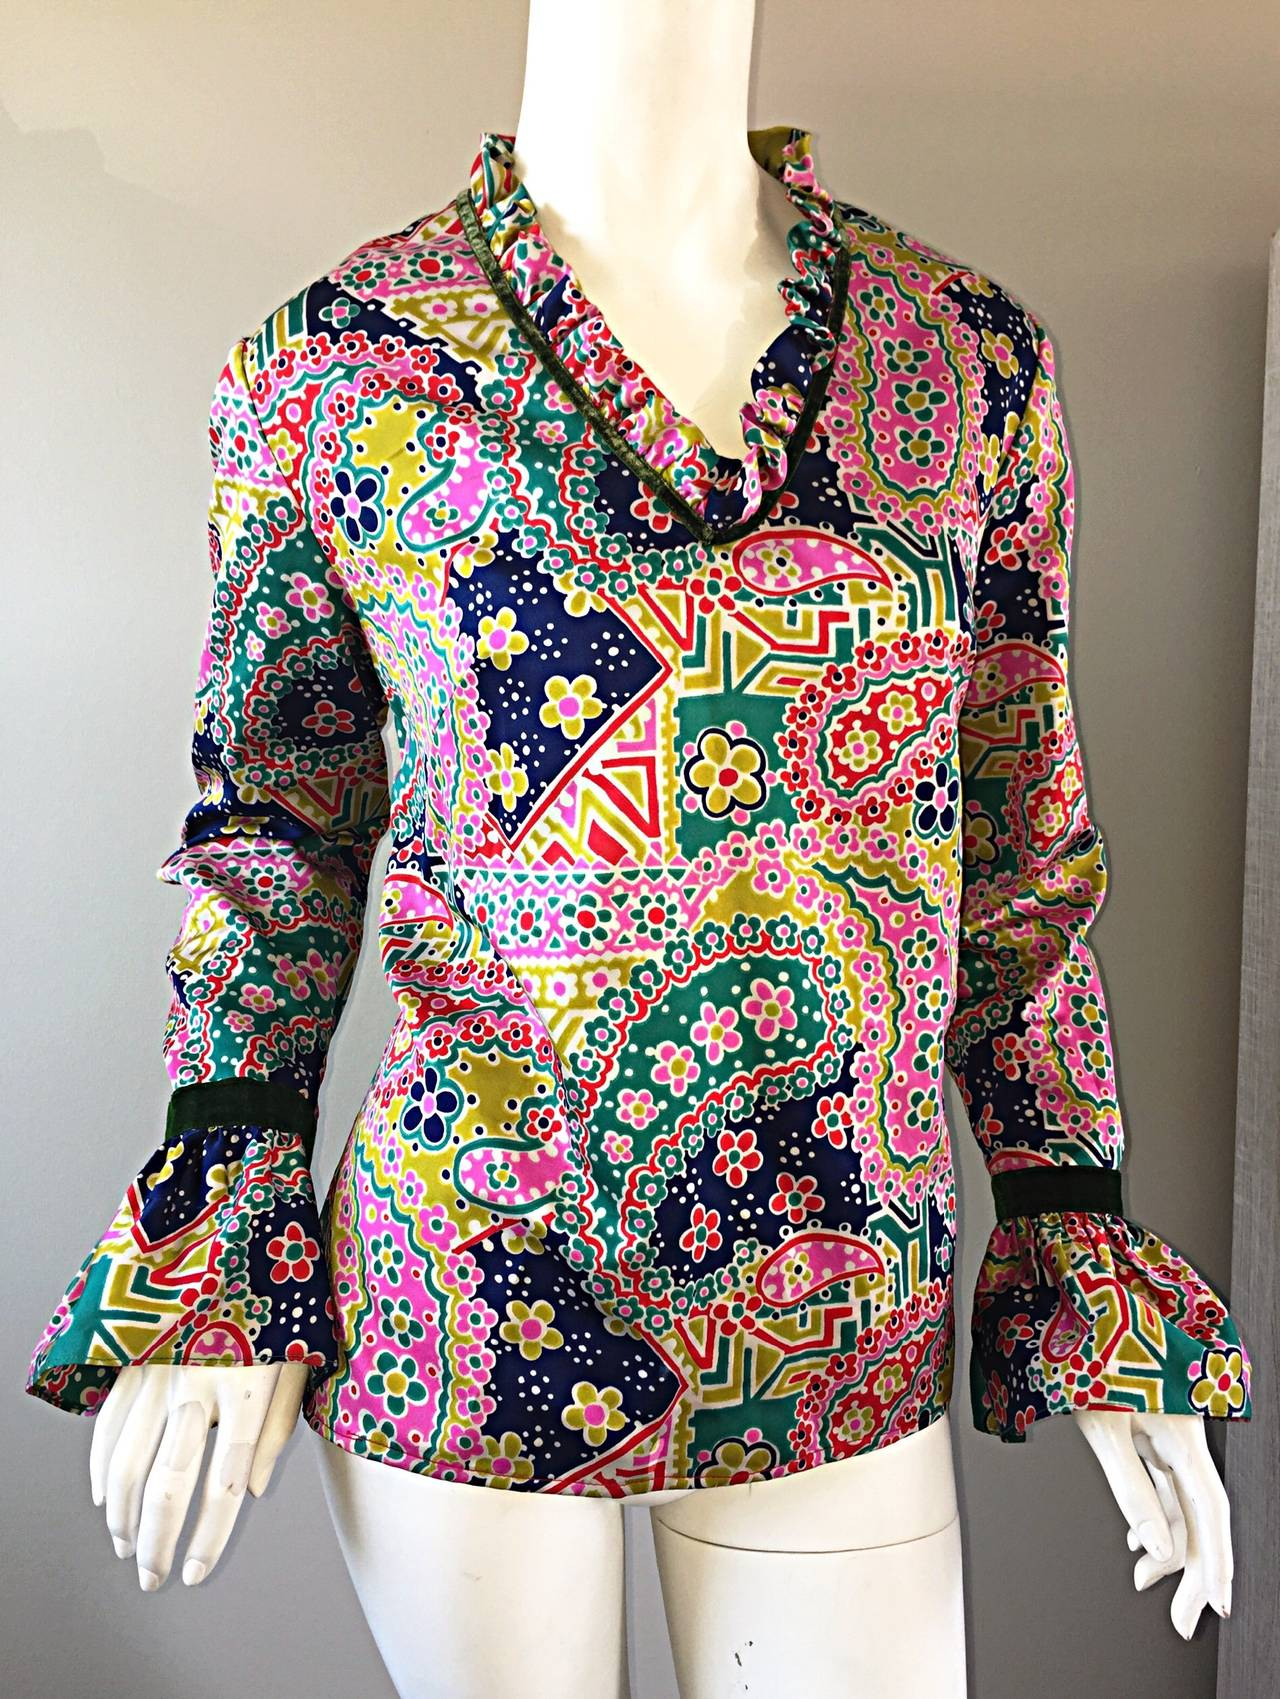 Psychedelic 1970s 70s Paisley + Floral Multi - Color Boho Top / Blouse / Tunic For Sale 1